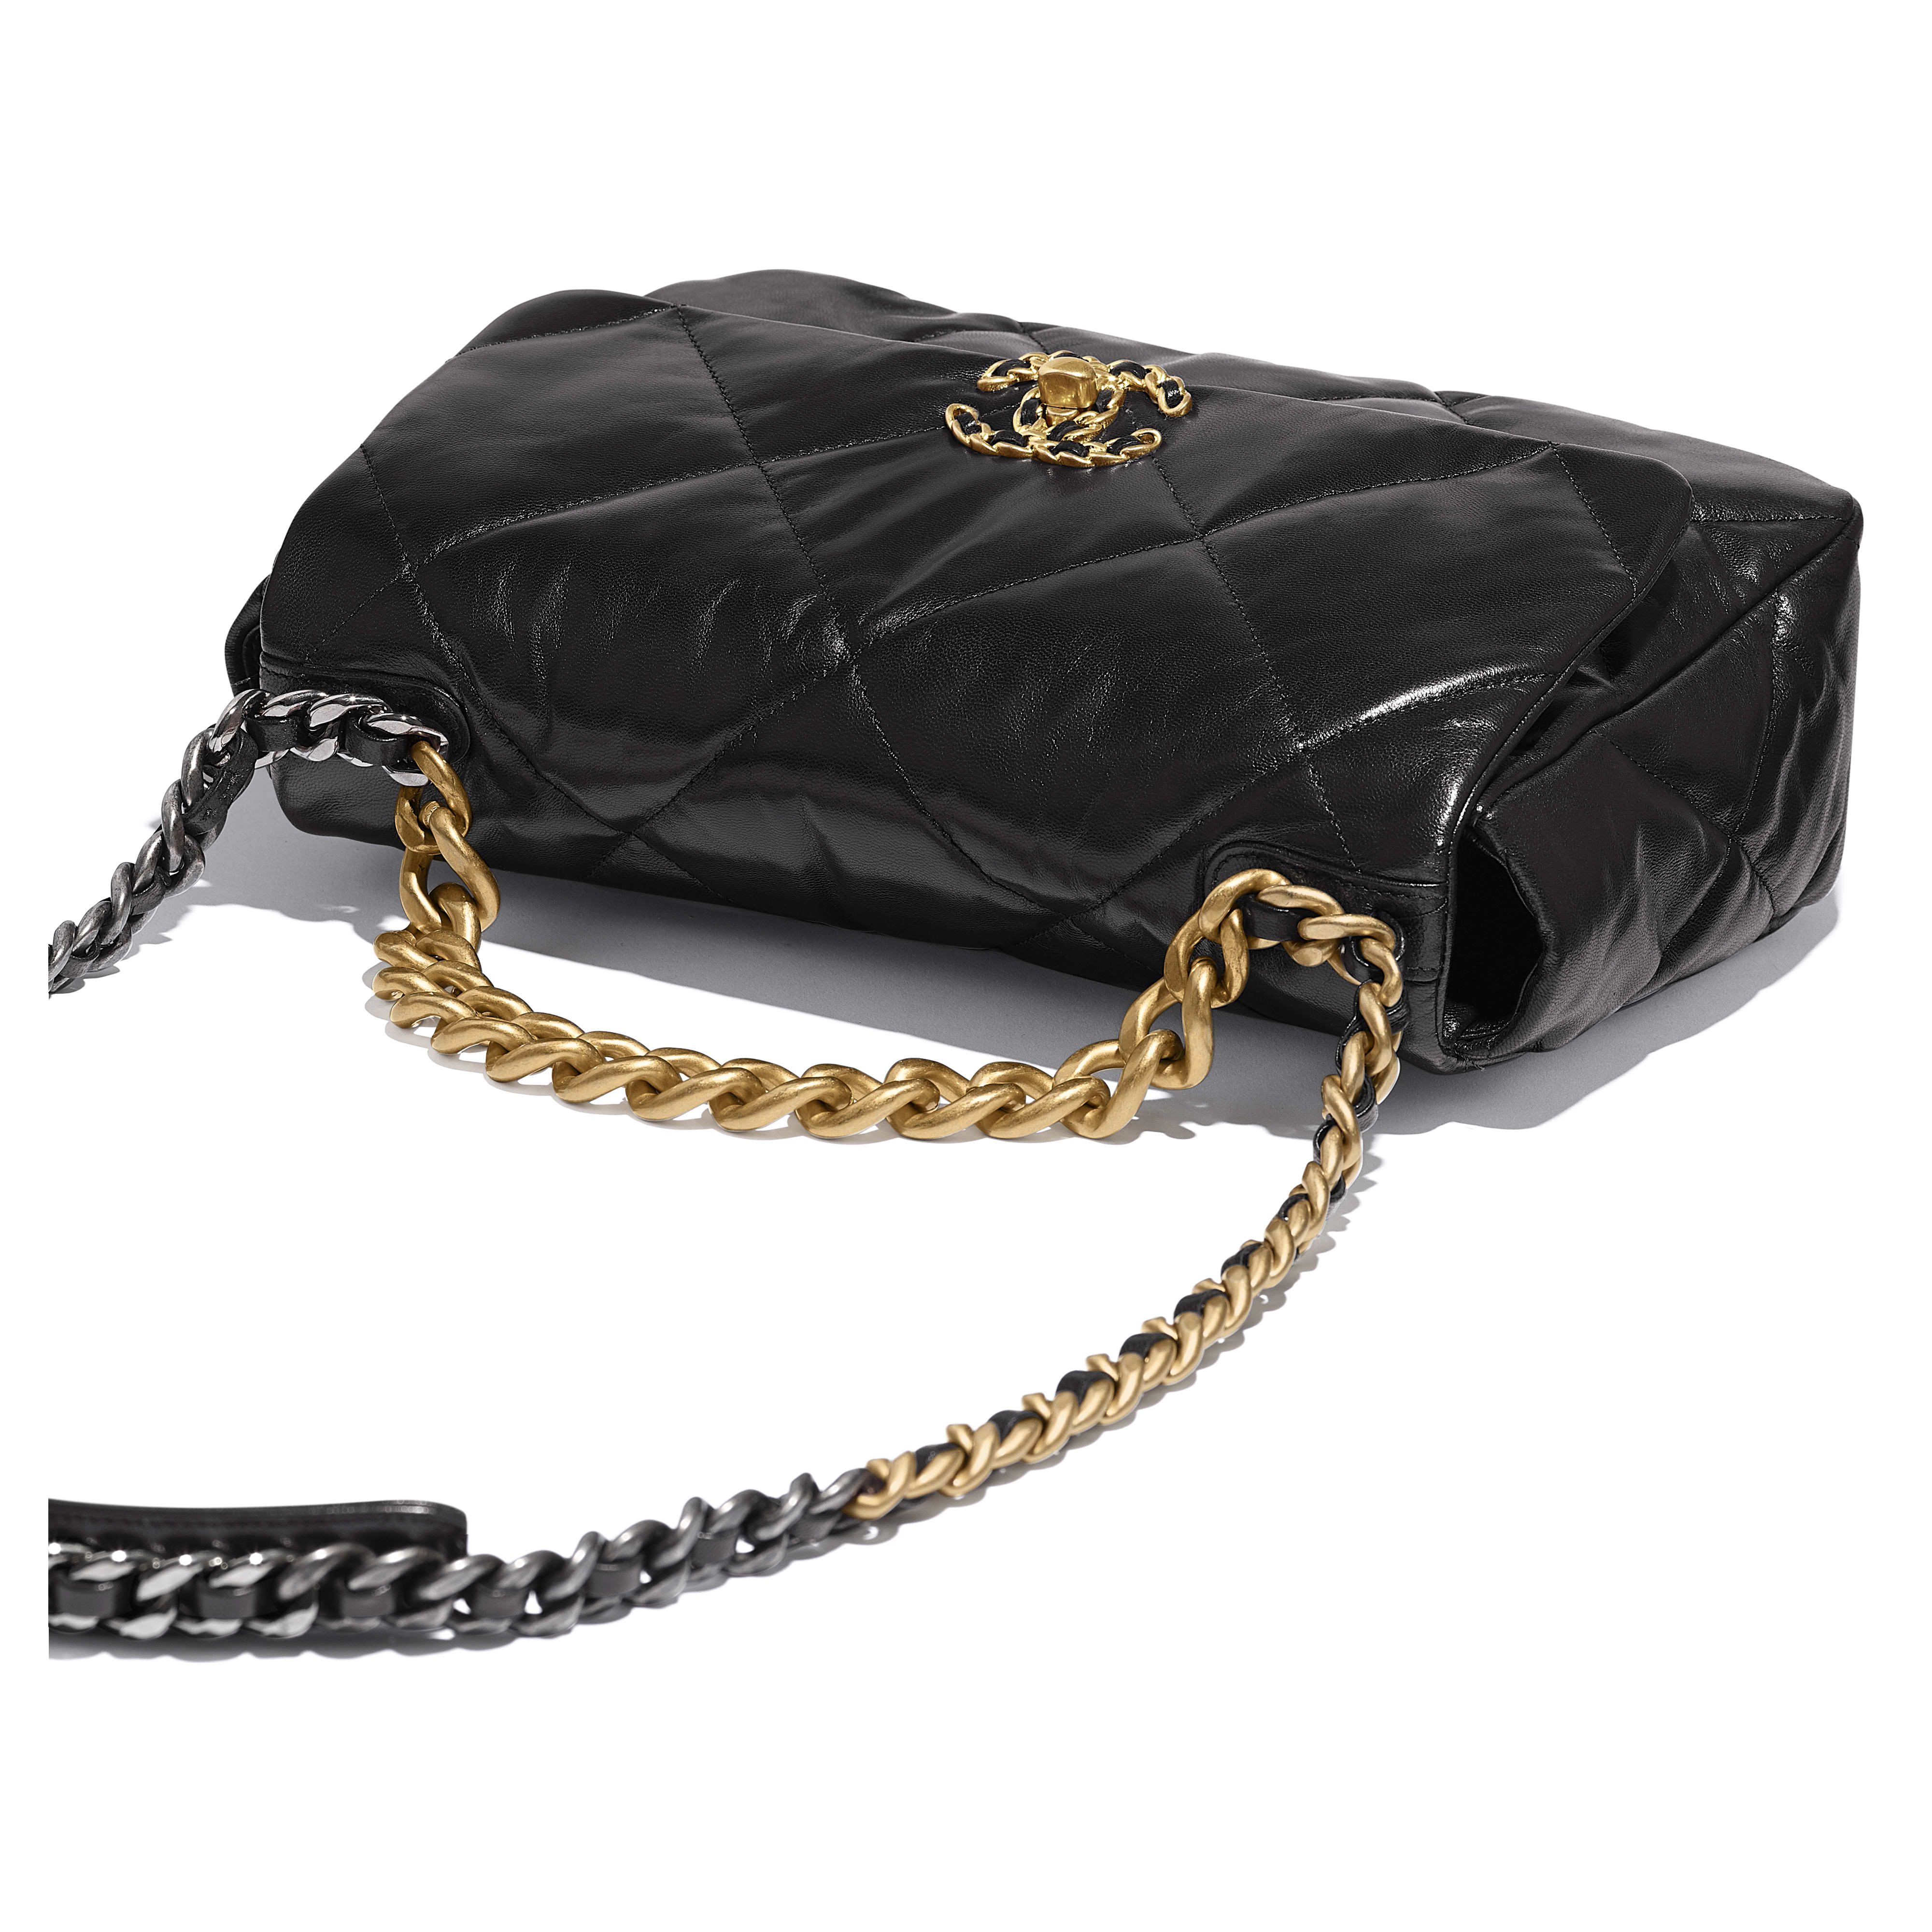 CHANEL 19 Large Flap Bag - Black - Lambskin, Gold-Tone, Silver-Tone & Ruthenium-Finish Metal - CHANEL - Extra view - see standard sized version